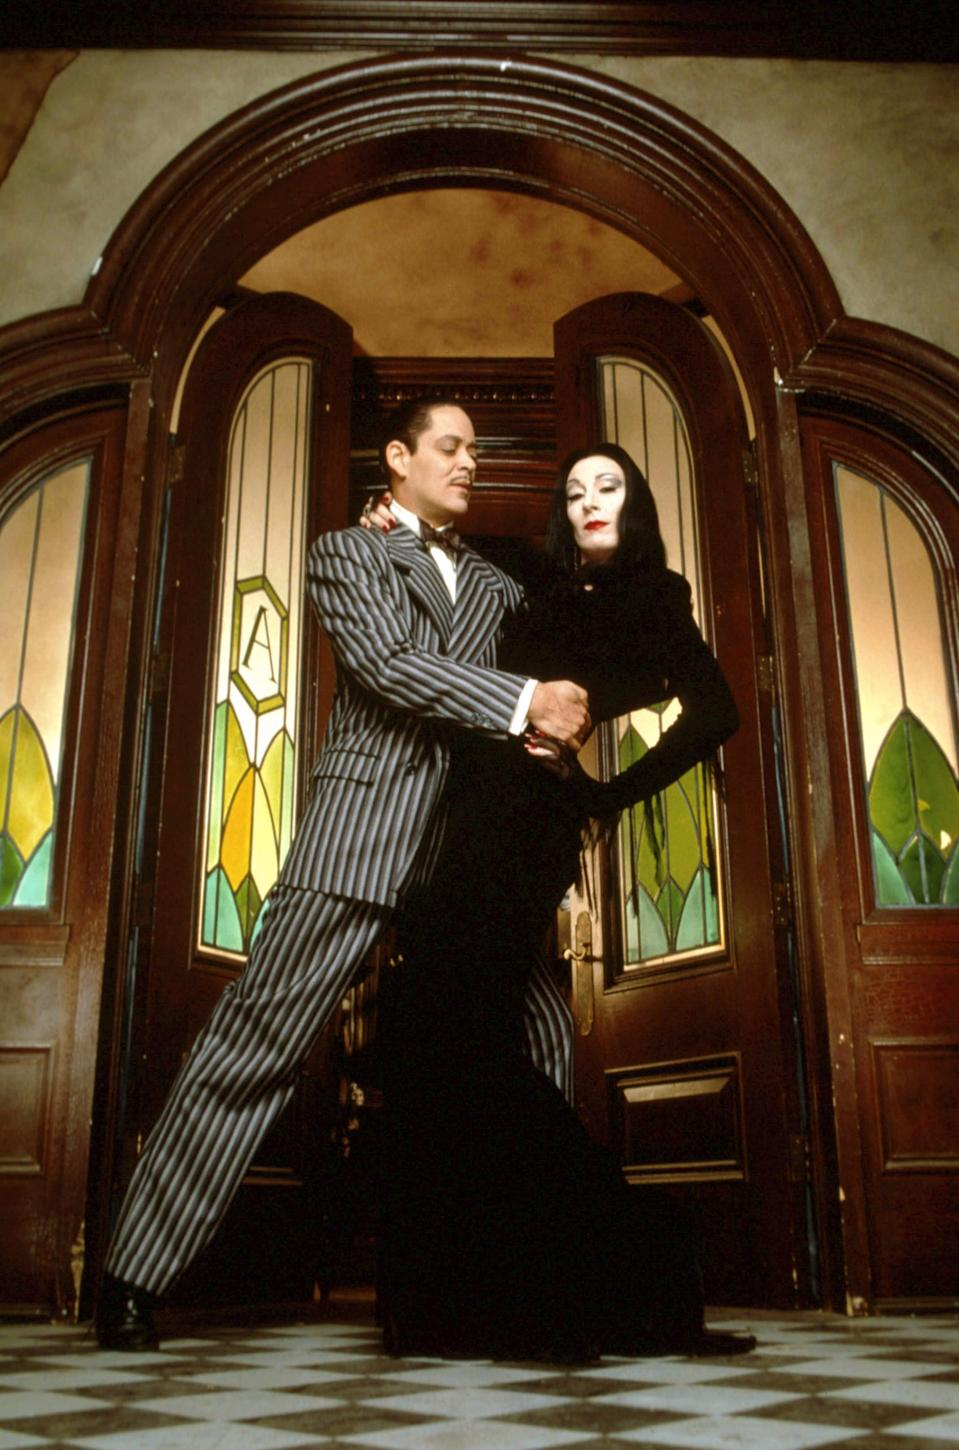 <p><strong>For Gomez:</strong> A pinstripe suit.</p> <p><strong>For Morticia:</strong> A long black gown with a deep V neckline.</p>